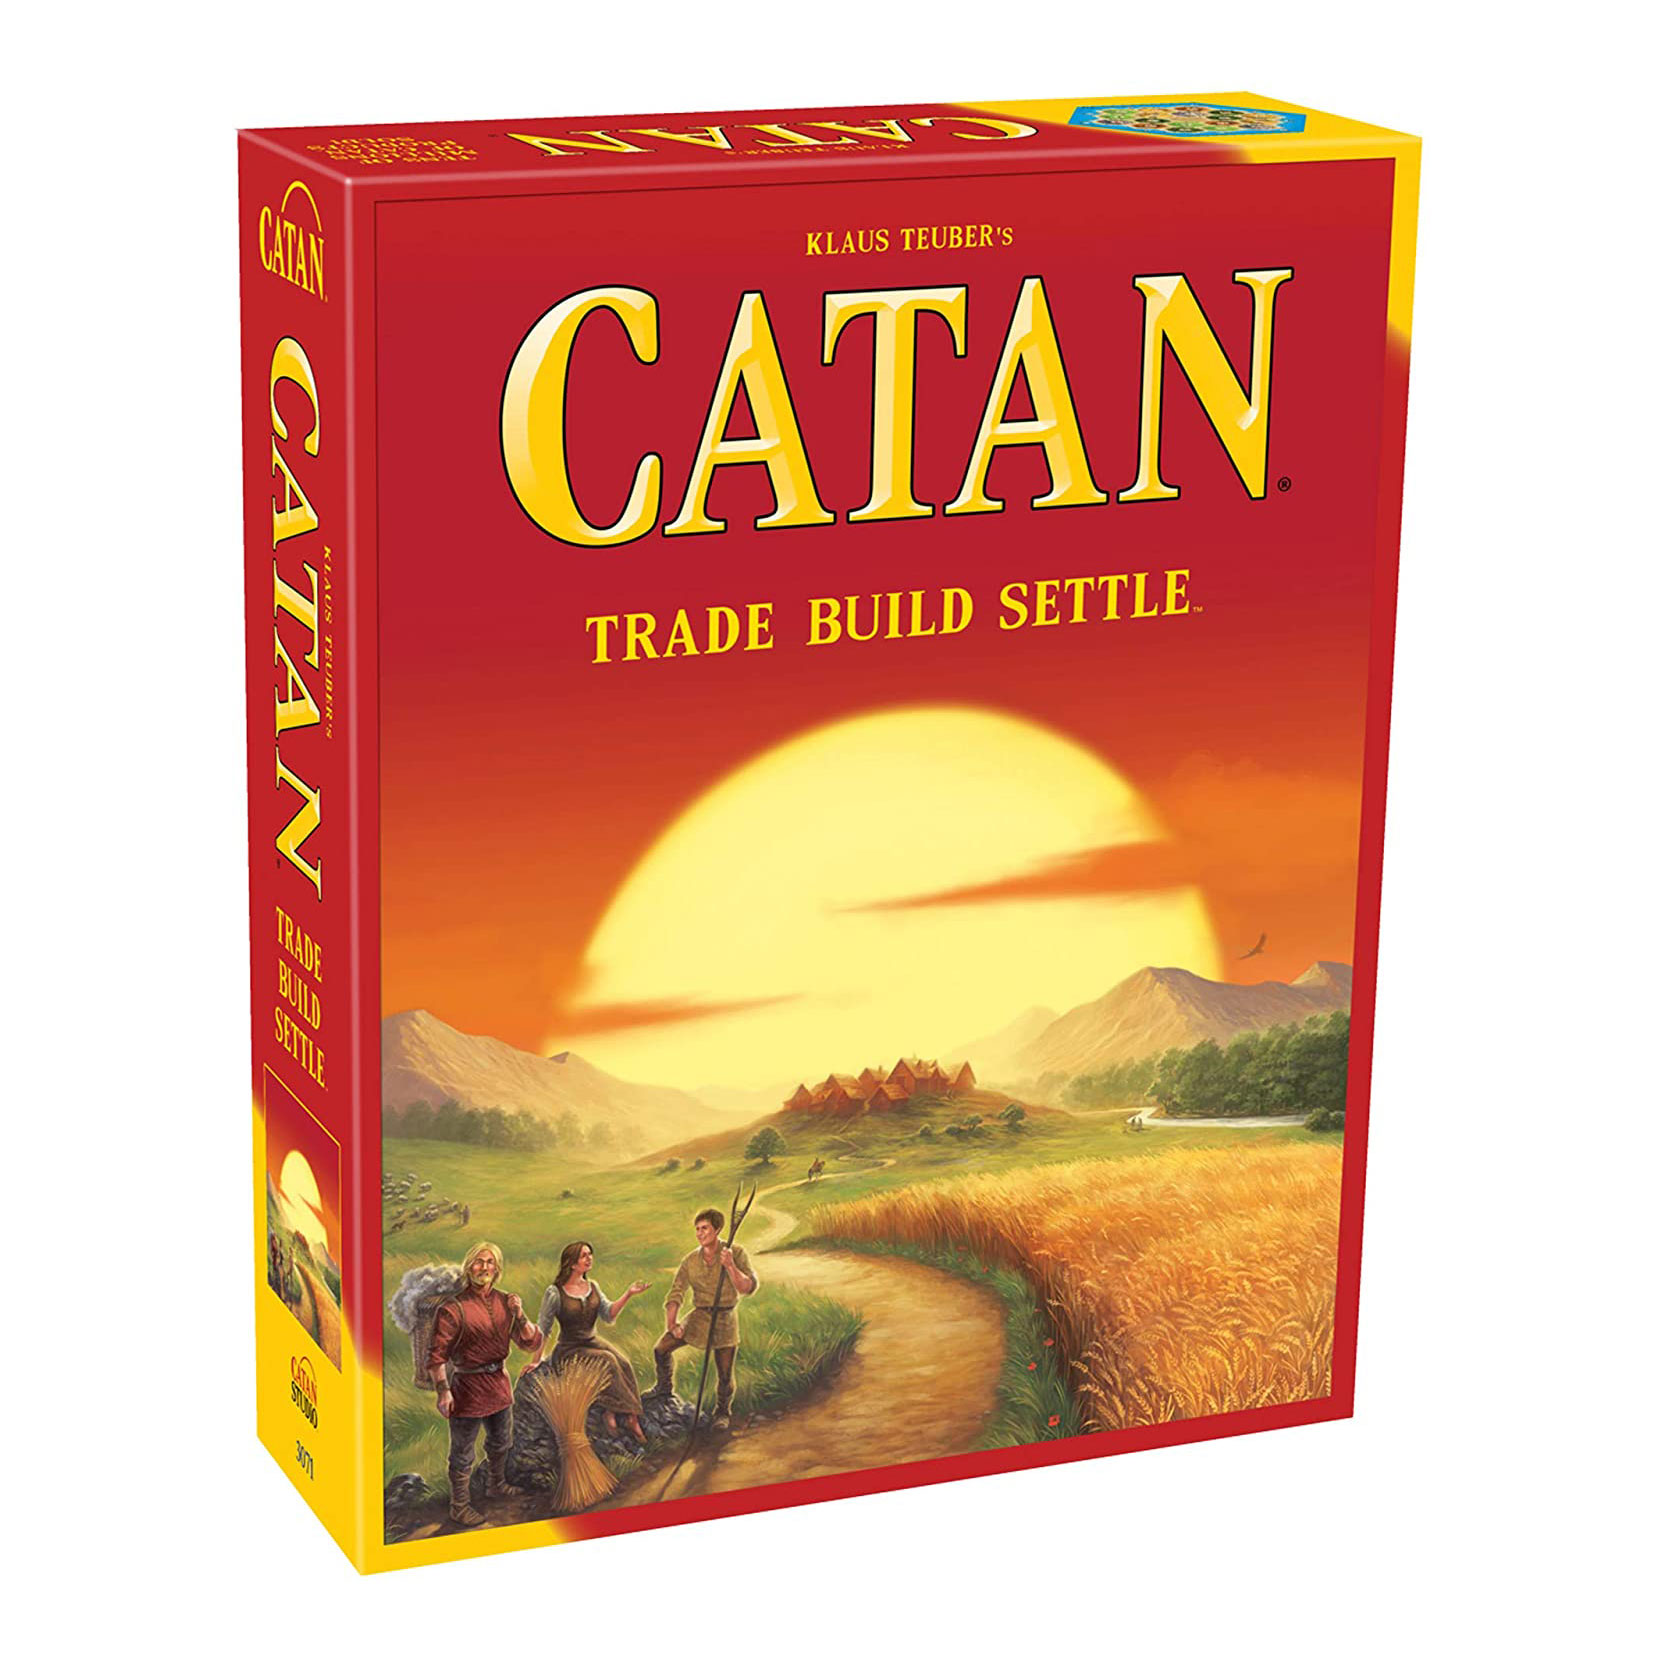 Gifts for teens and tweens - Catan the Board Game